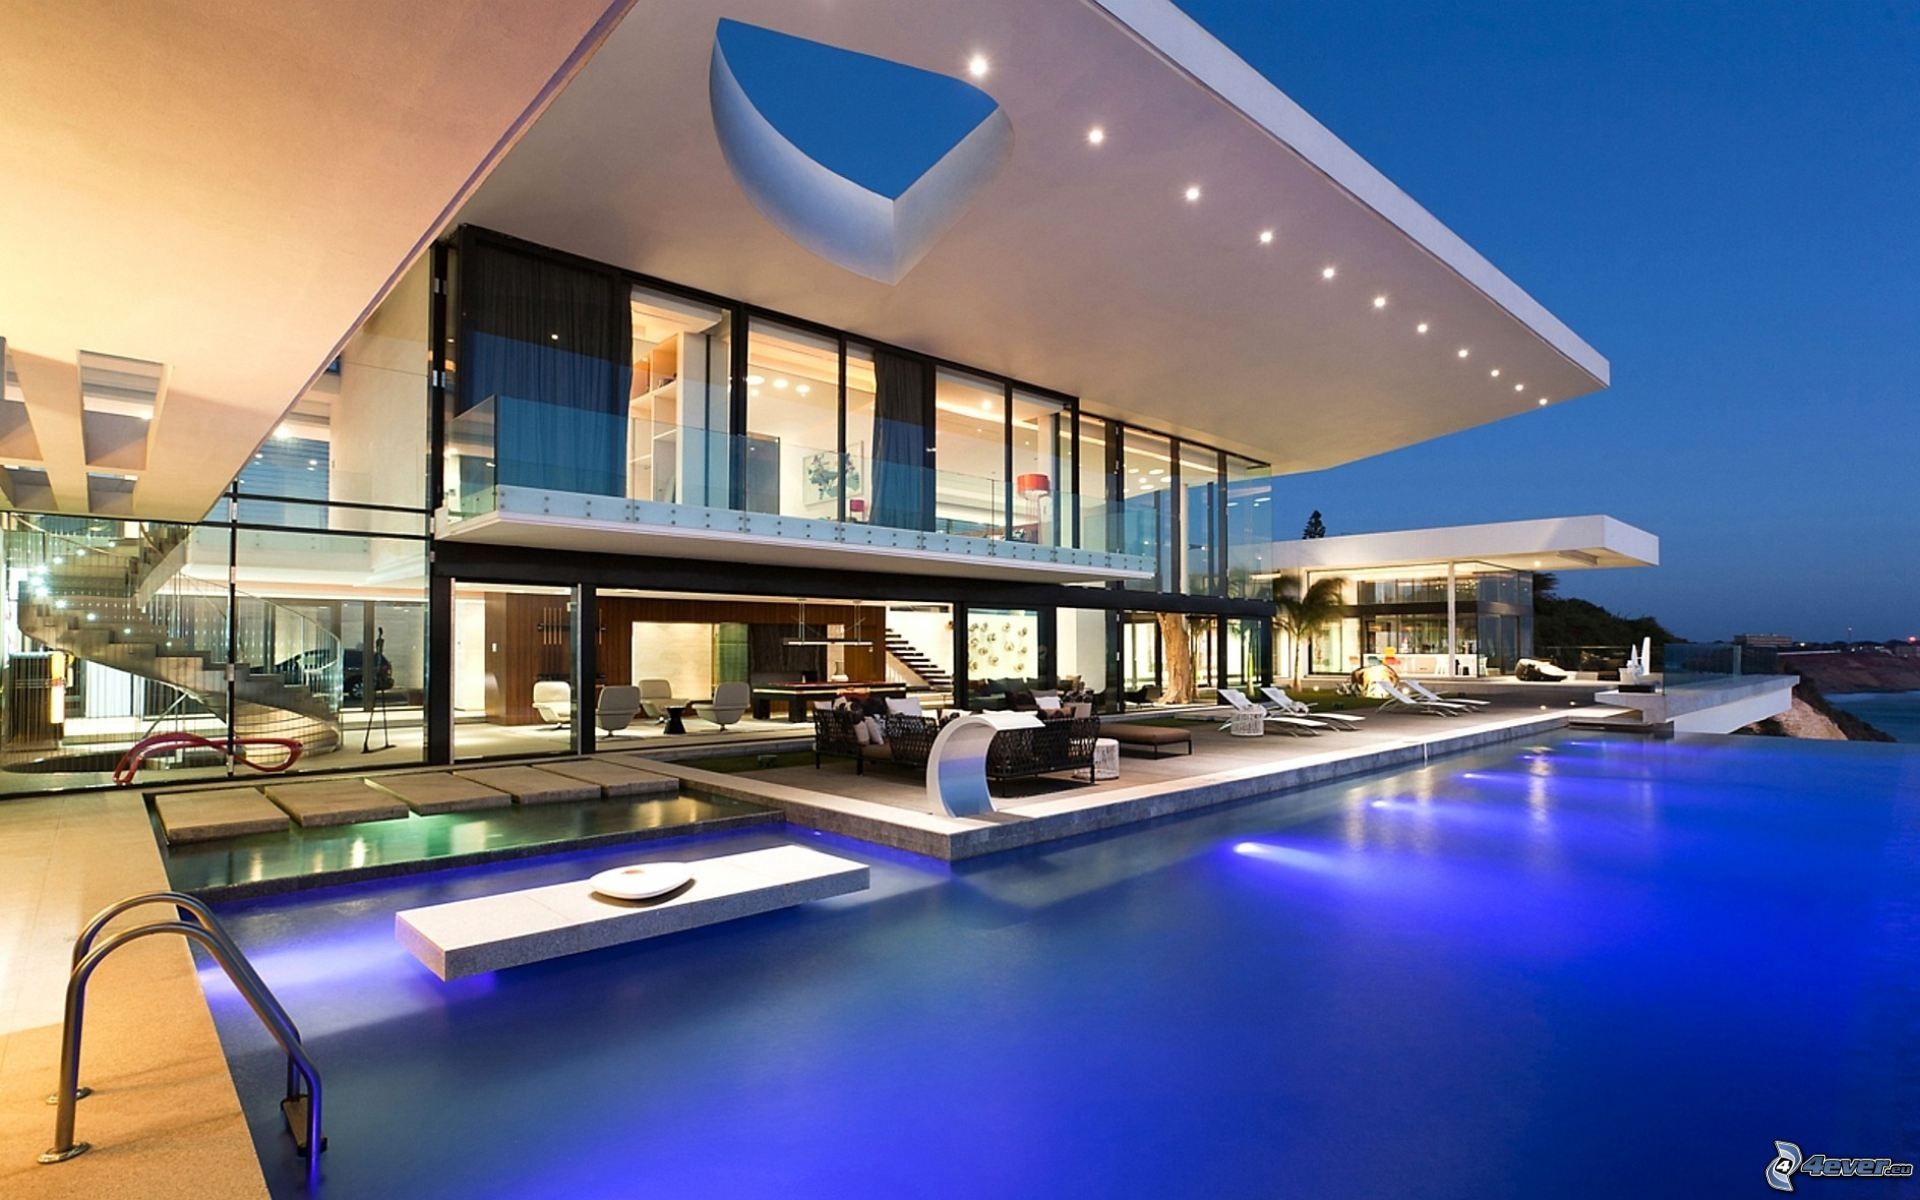 Luxury Build My Dream House With Pool